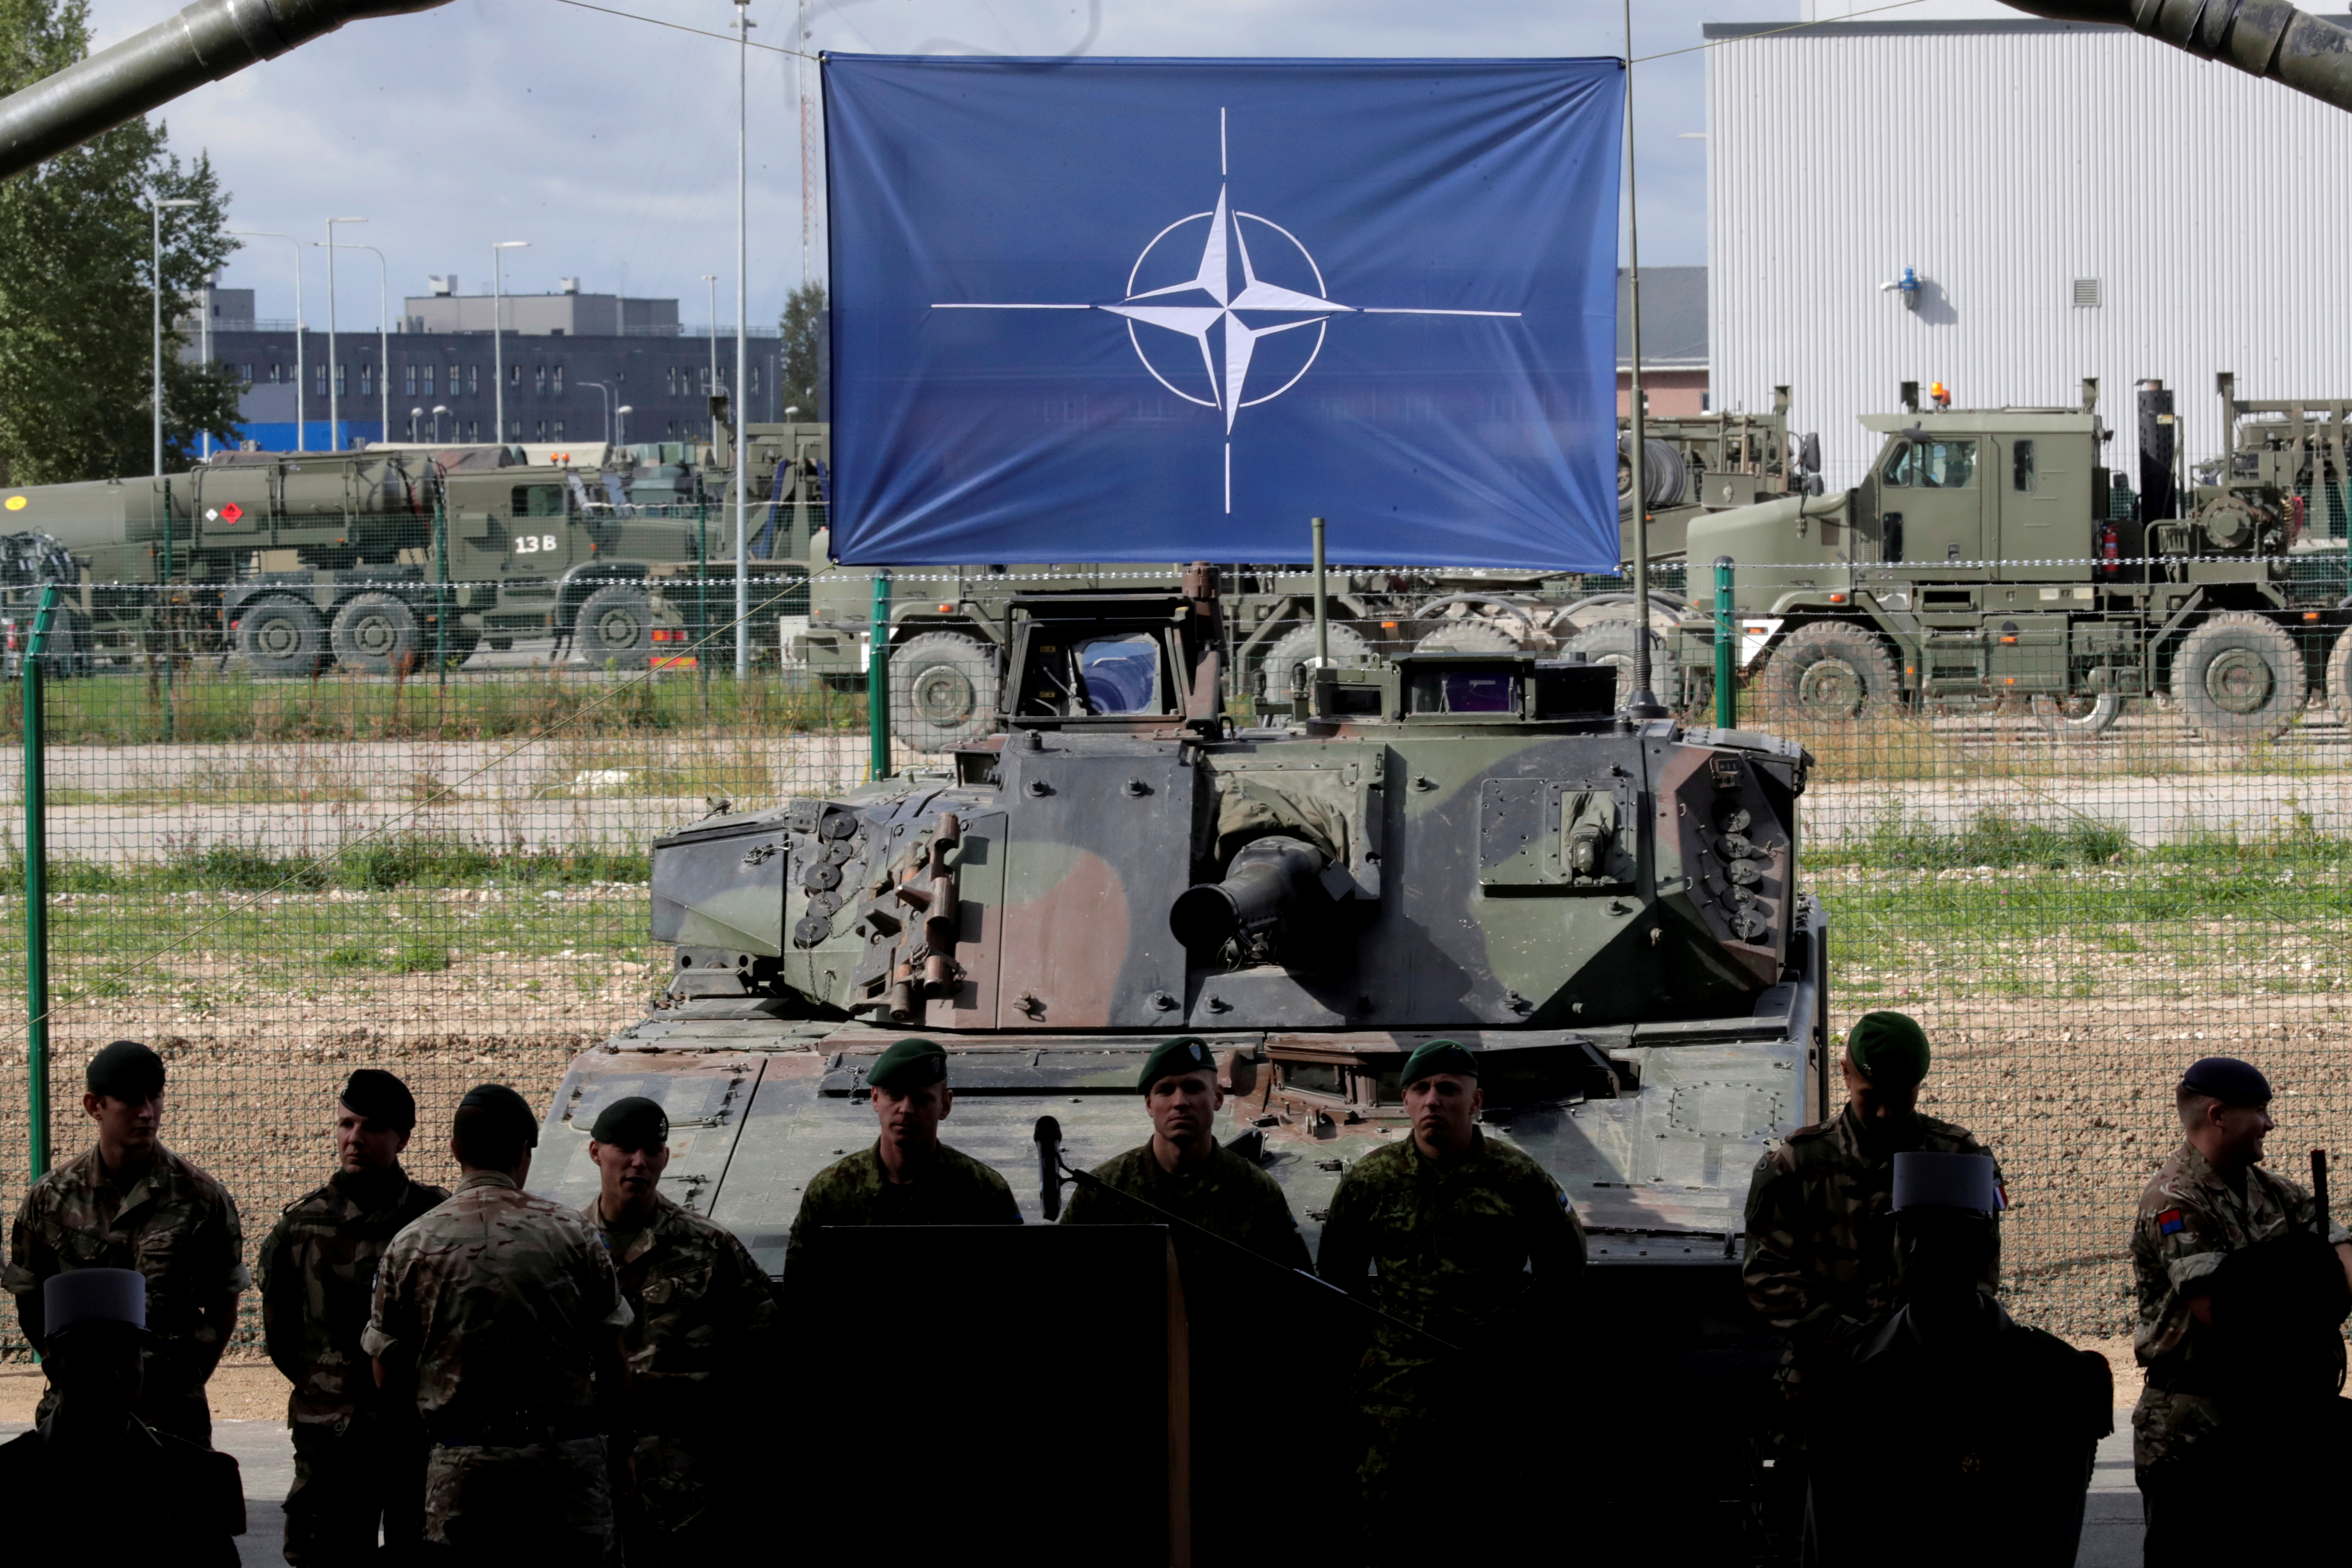 NATO eFP battle group soldiers wait for NATO Secretary General Jens Stoltenberg visit the Tapa military base in Estonia.